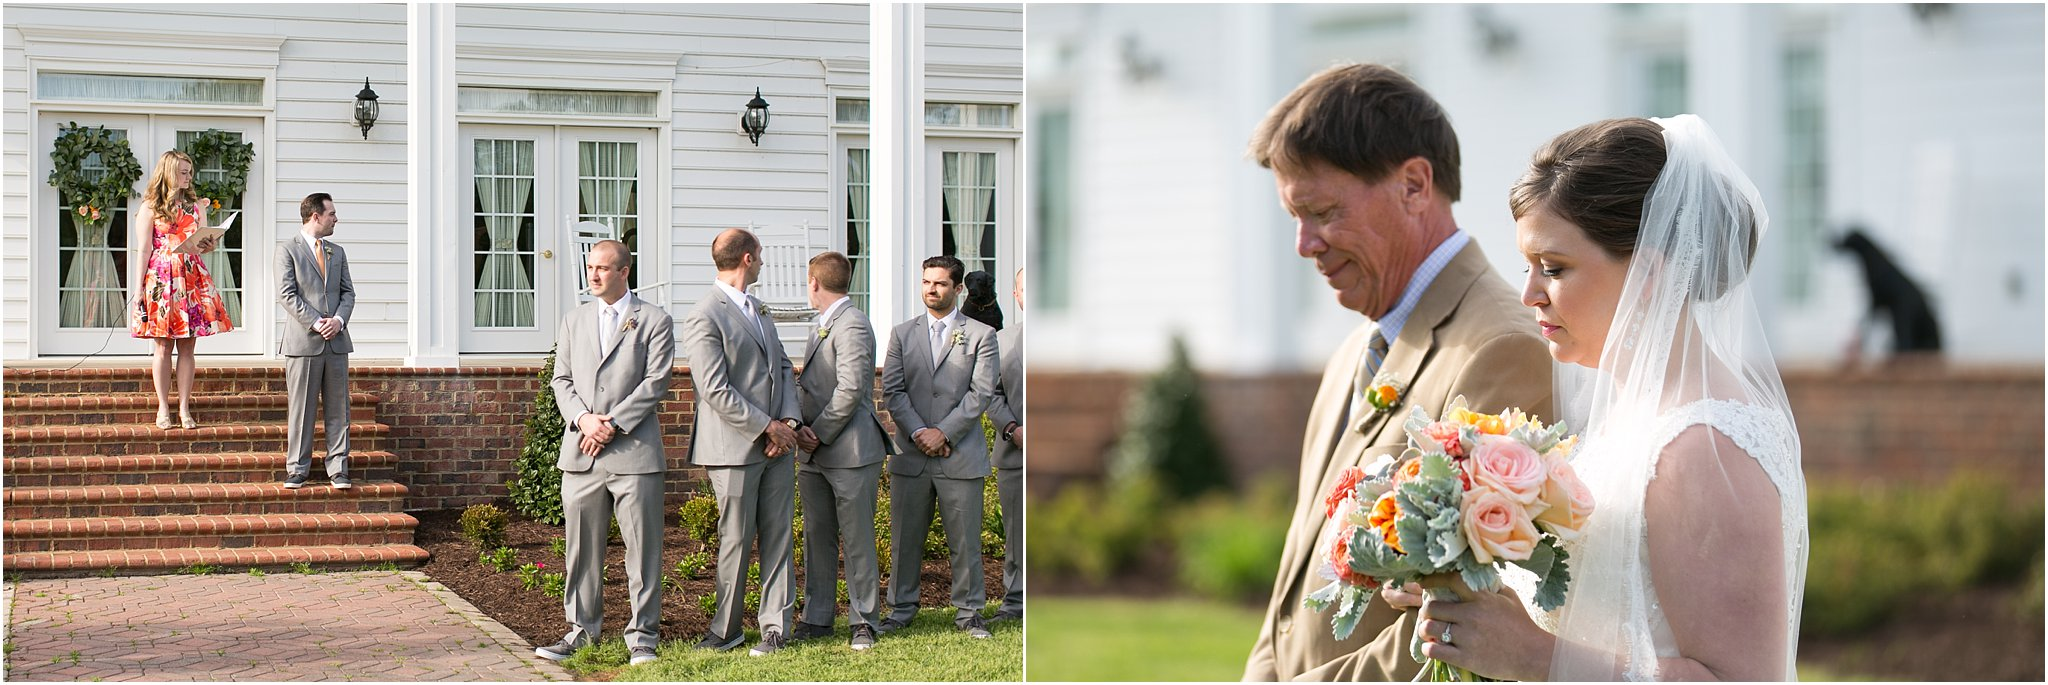 jessica_ryan_photography_holly_ridge_manor_wedding_roost_flowers_jamie_leigh_events_dhalia_edwards_candid_vibrant_wedding_colors_1290